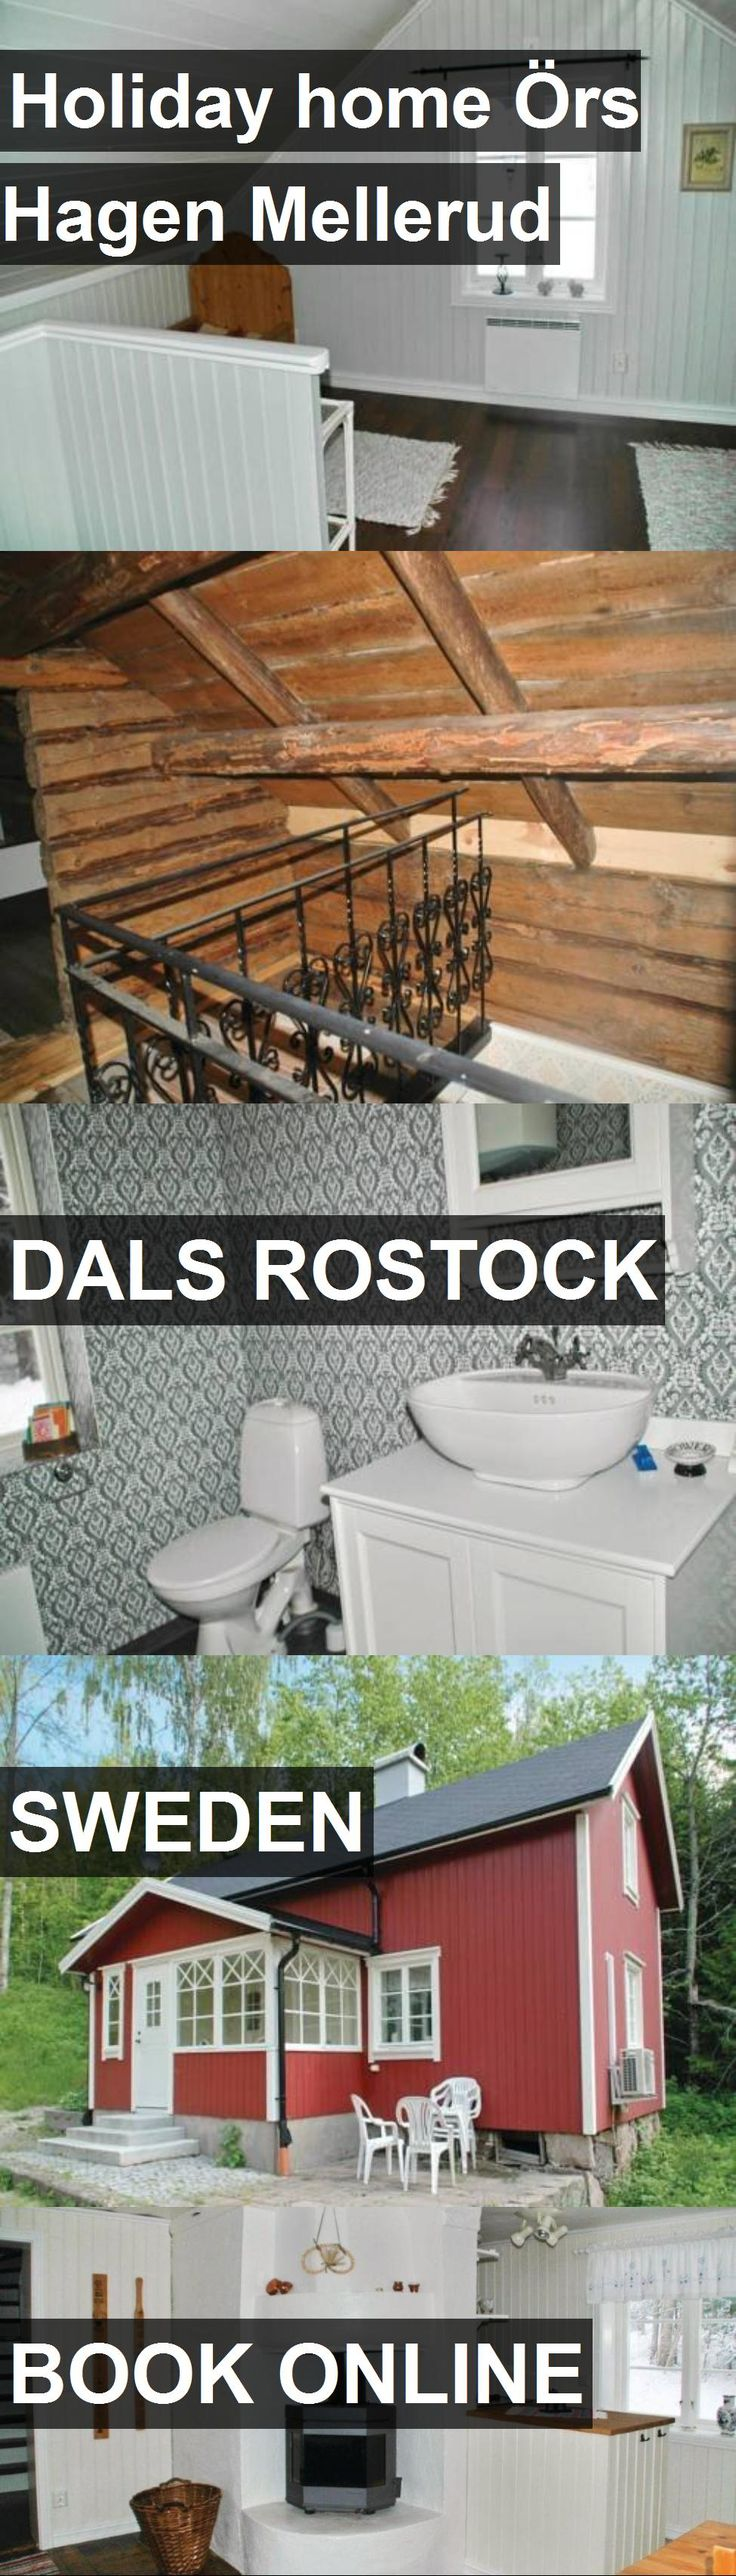 Hotel Holiday home Örs Hagen Mellerud in Dals Rostock, Sweden. For more information, photos, reviews and best prices please follow the link. #Sweden #DalsRostock #HolidayhomeÖrsHagenMellerud #hotel #travel #vacation